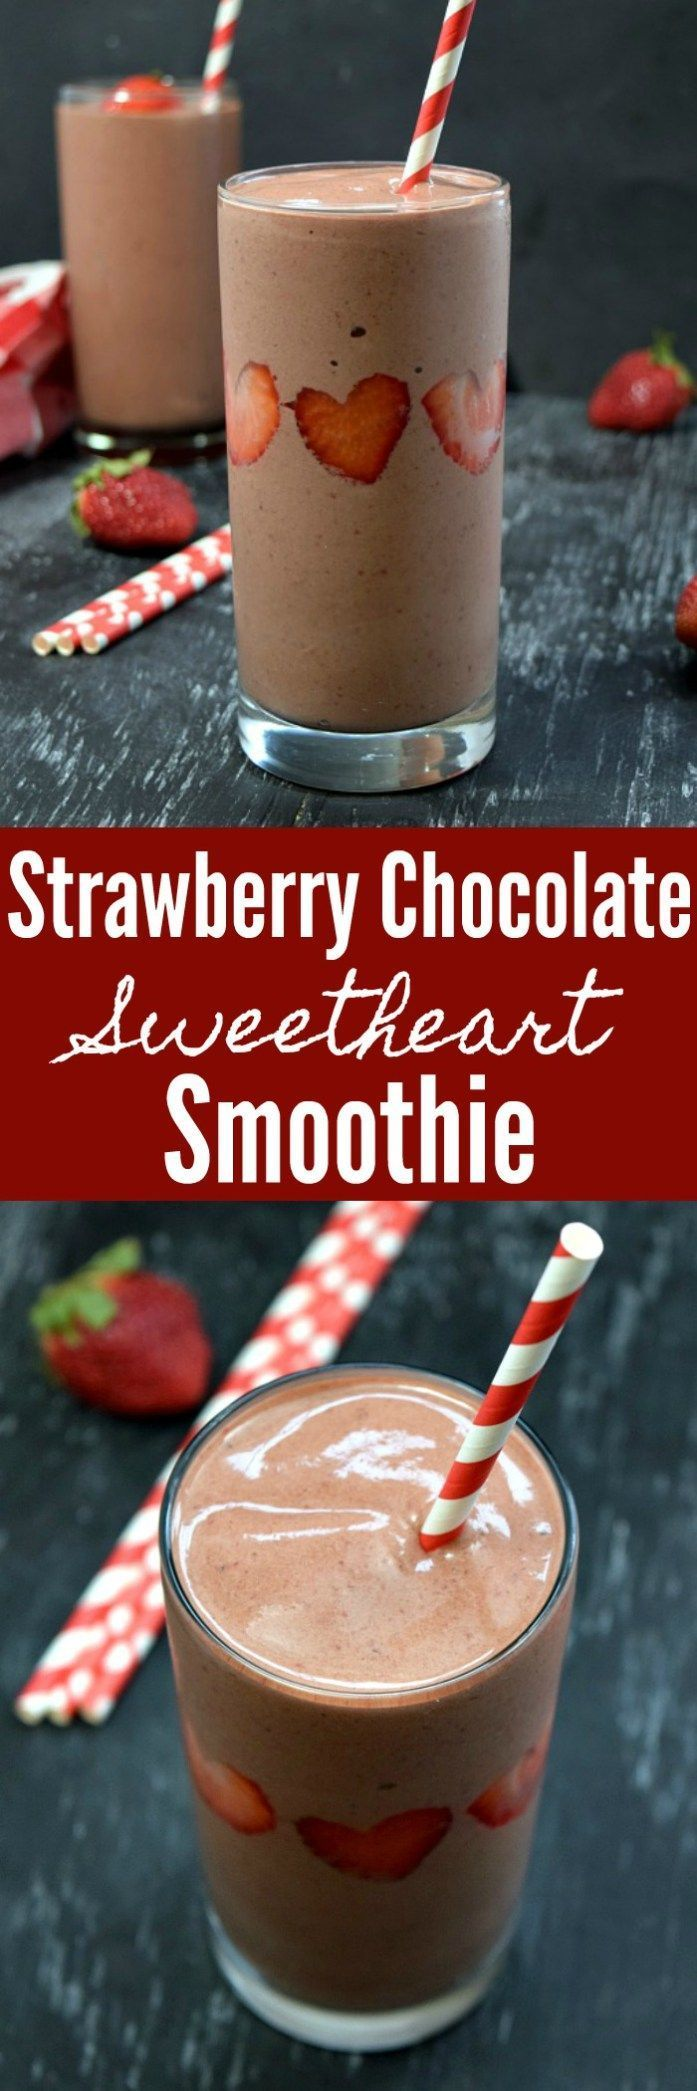 Strawberry Chocolate Sweetheart Smoothie Pinterest Pin #smoothie #strawberry #chocolate #strawberrychocolate #valentinesday #chocolatestrawberrysmoothie